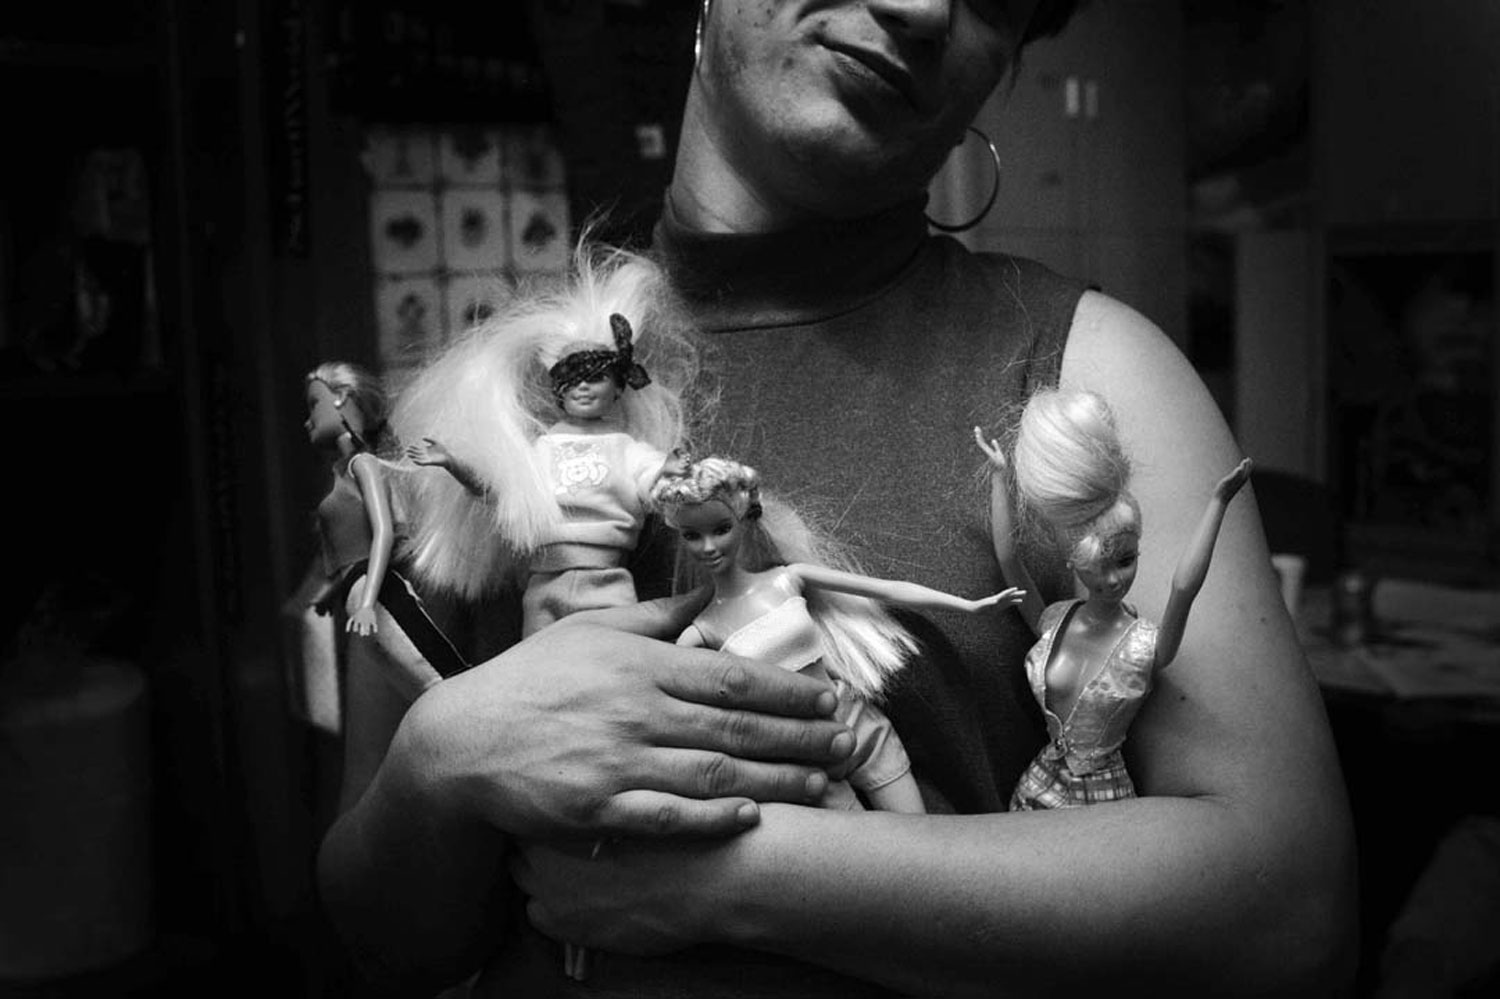 J. holds D.'s Barbie doll family during drop-in hours at Sylvia's Place, New York City's only emergency shelter for homeless LGBT youth. January 2006.